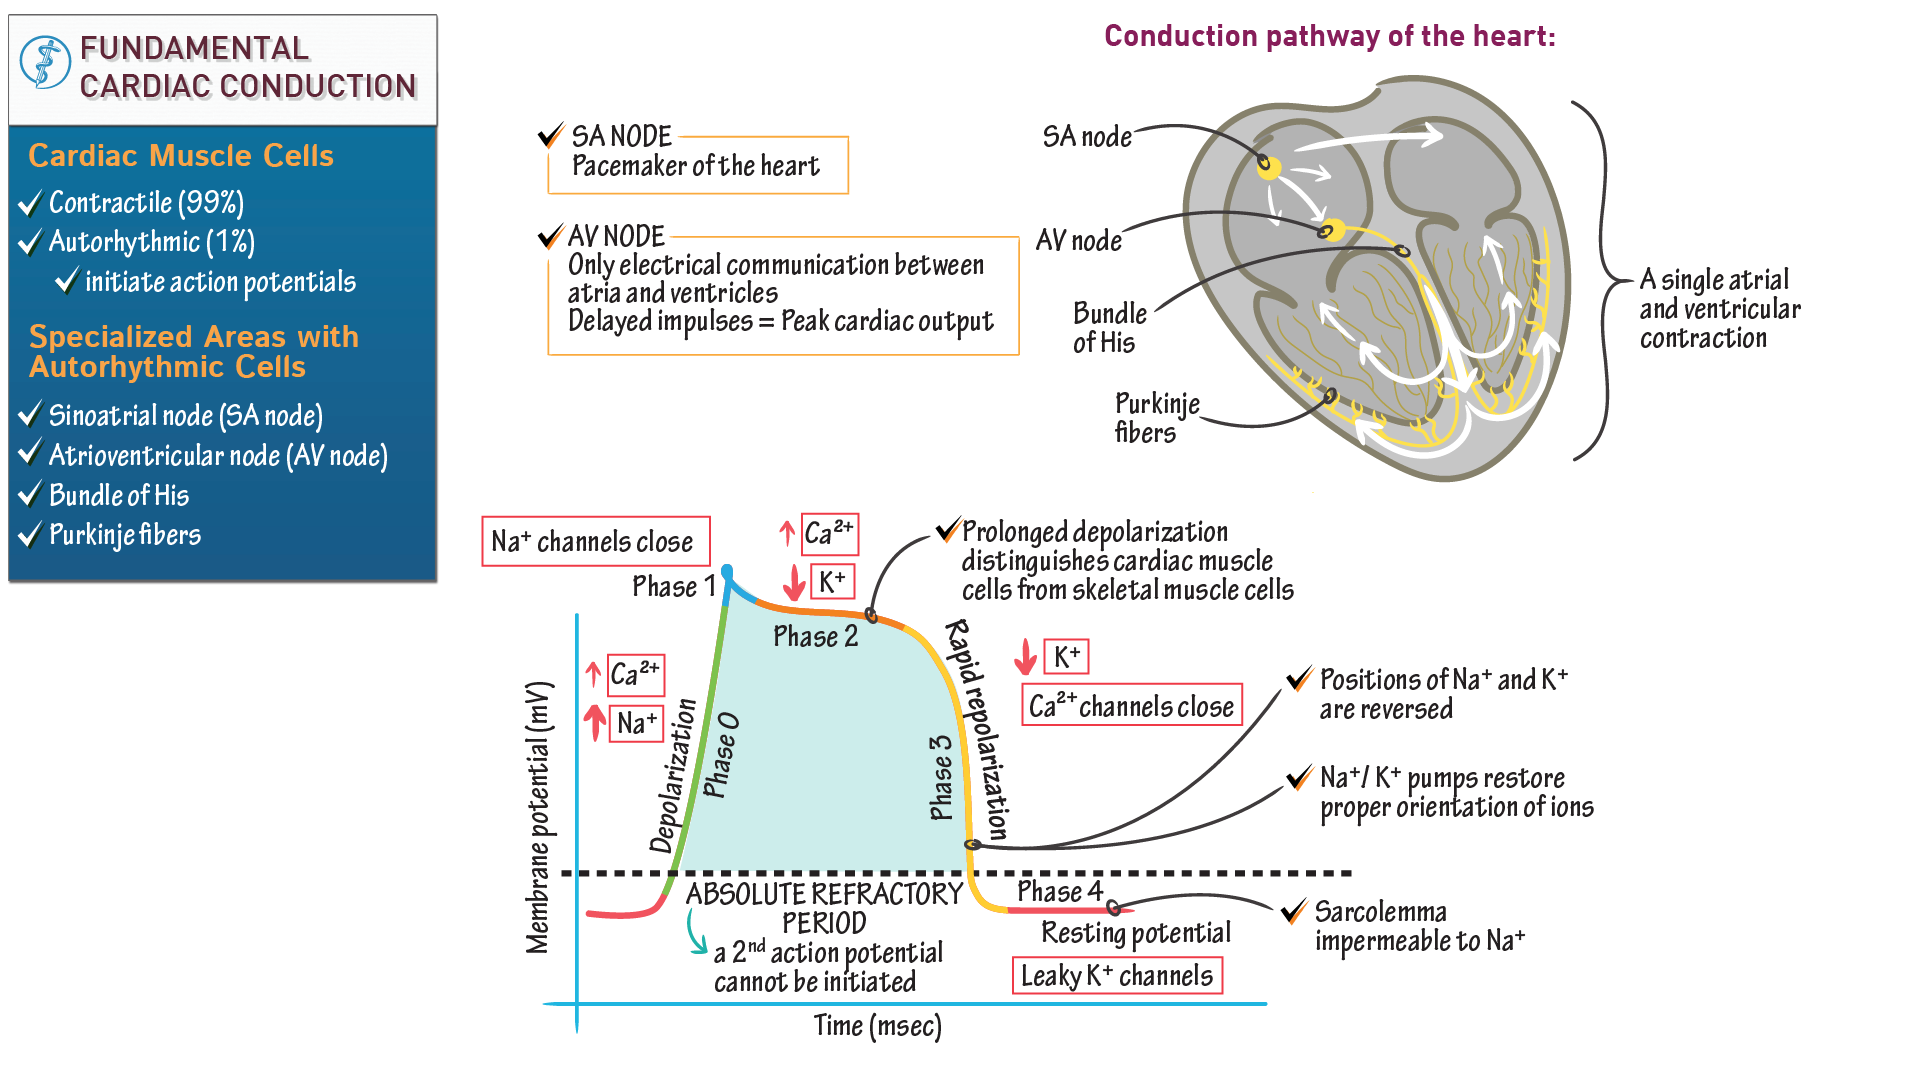 Großzügig Action Potential Anatomy And Physiology Fotos - Anatomie ...